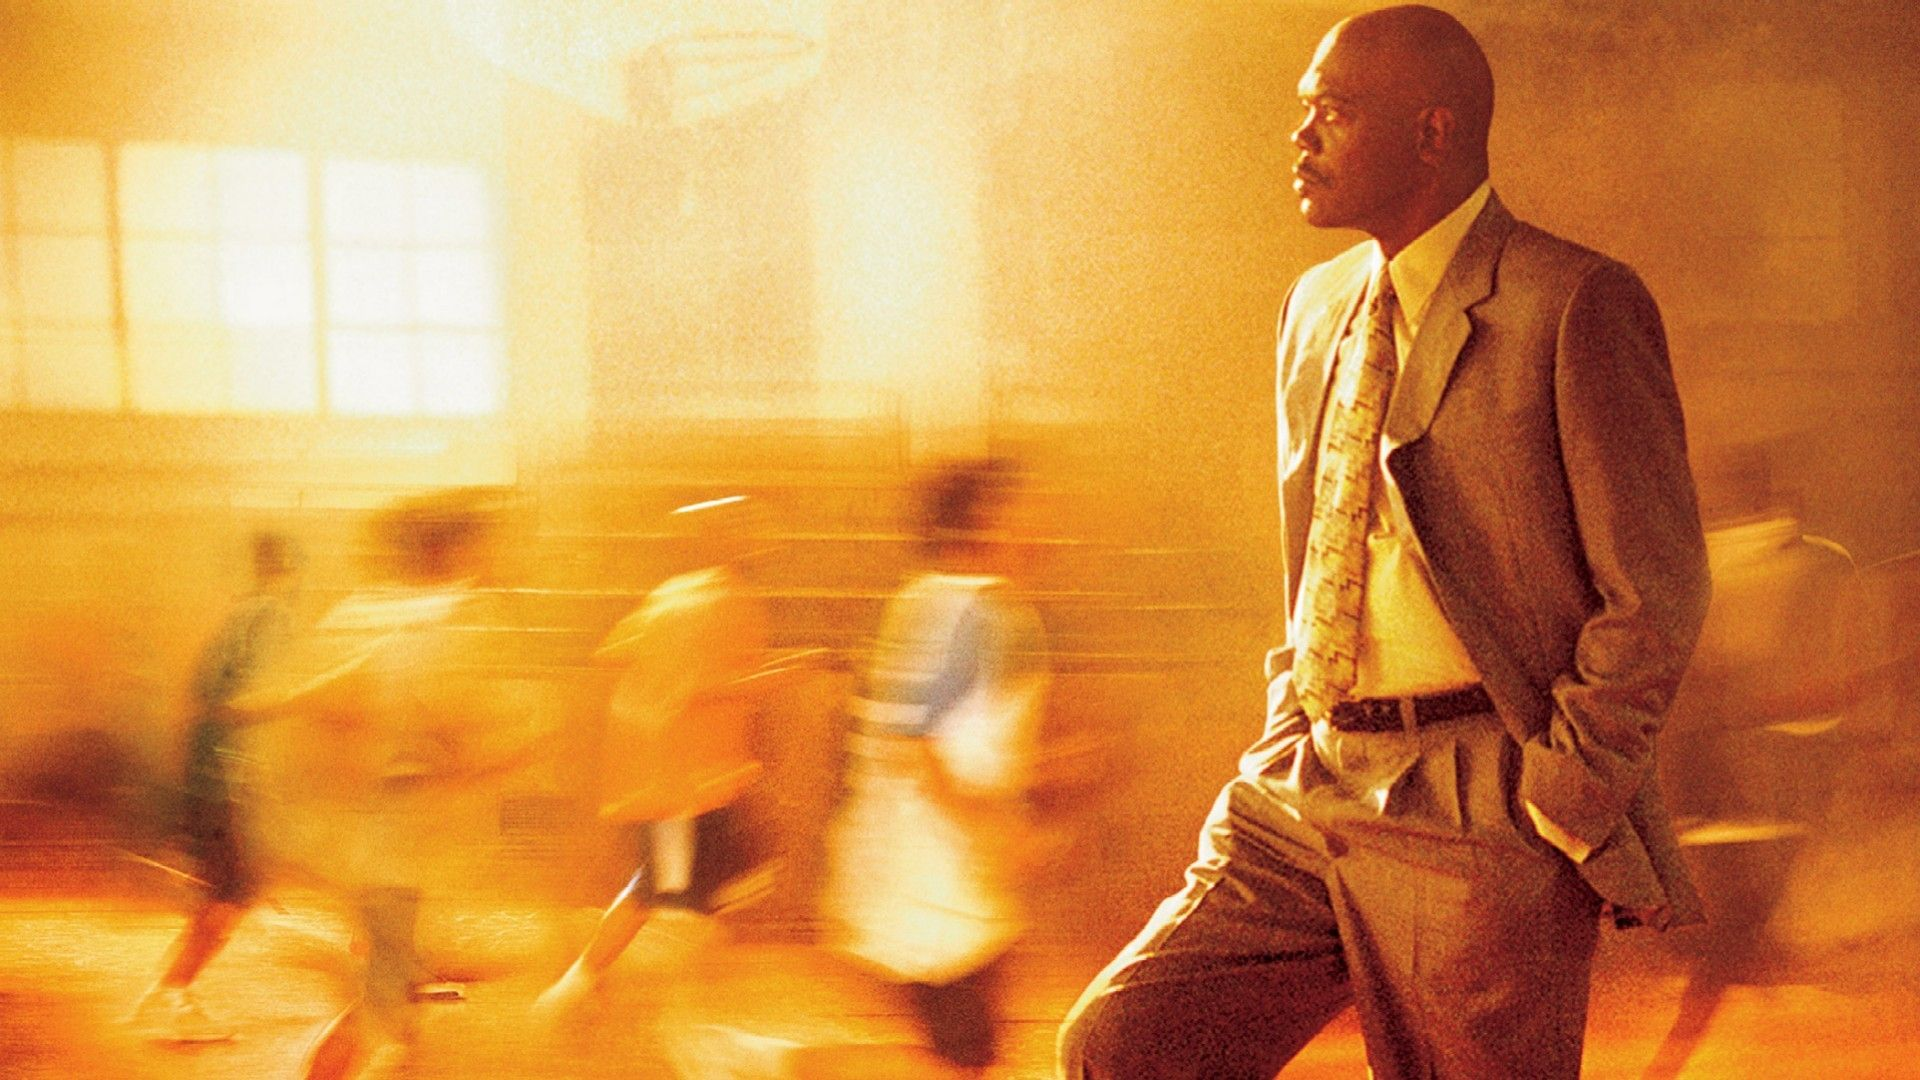 Coach Carter Wallpapers Daily Inspiration Art Photos Pictures And Wallpapers Coach Carter Coach Movies And Tv Shows